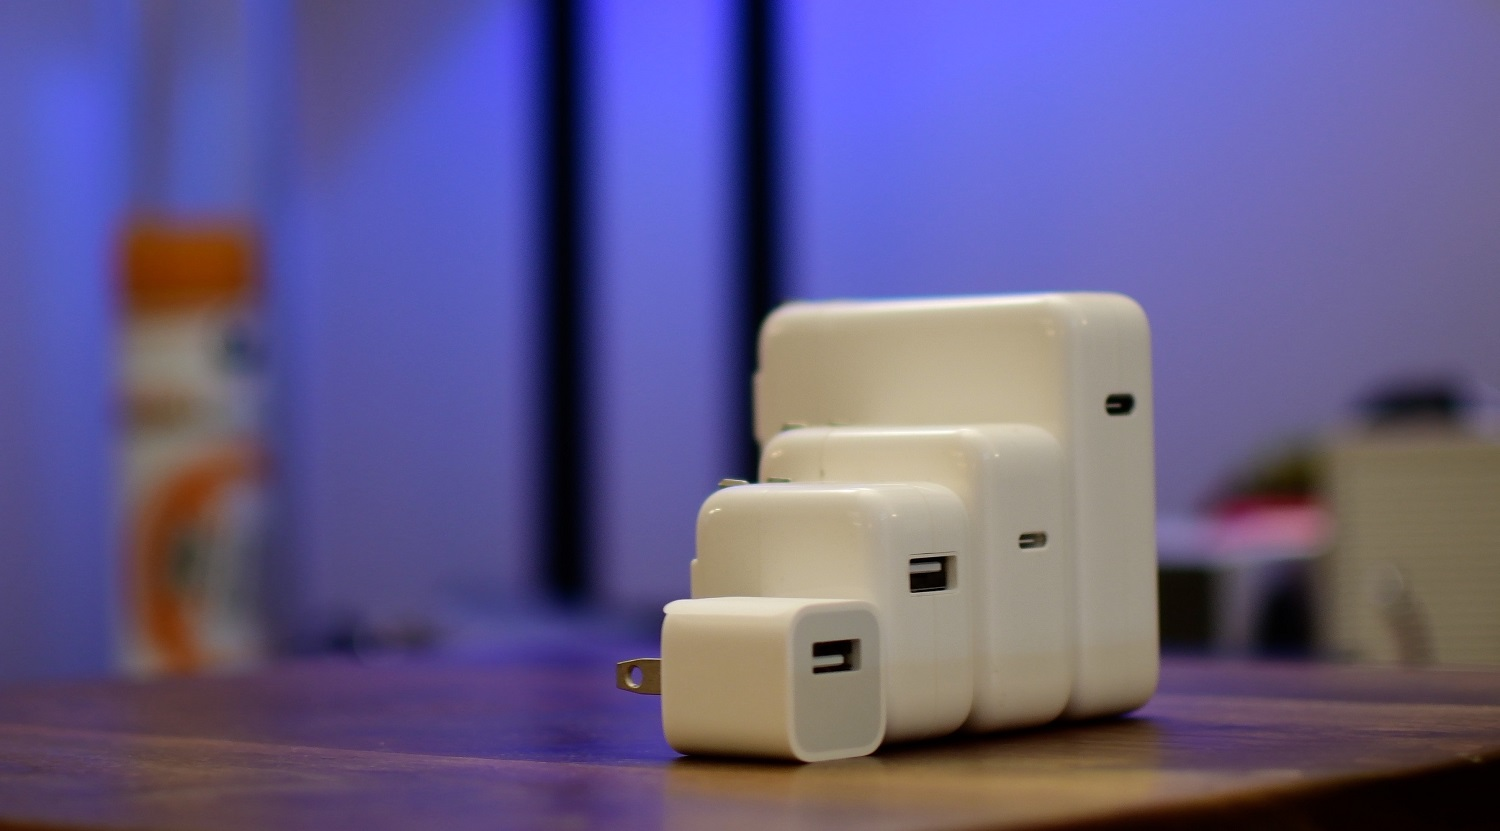 Apple power adapters for iPhone, iPad, Mac